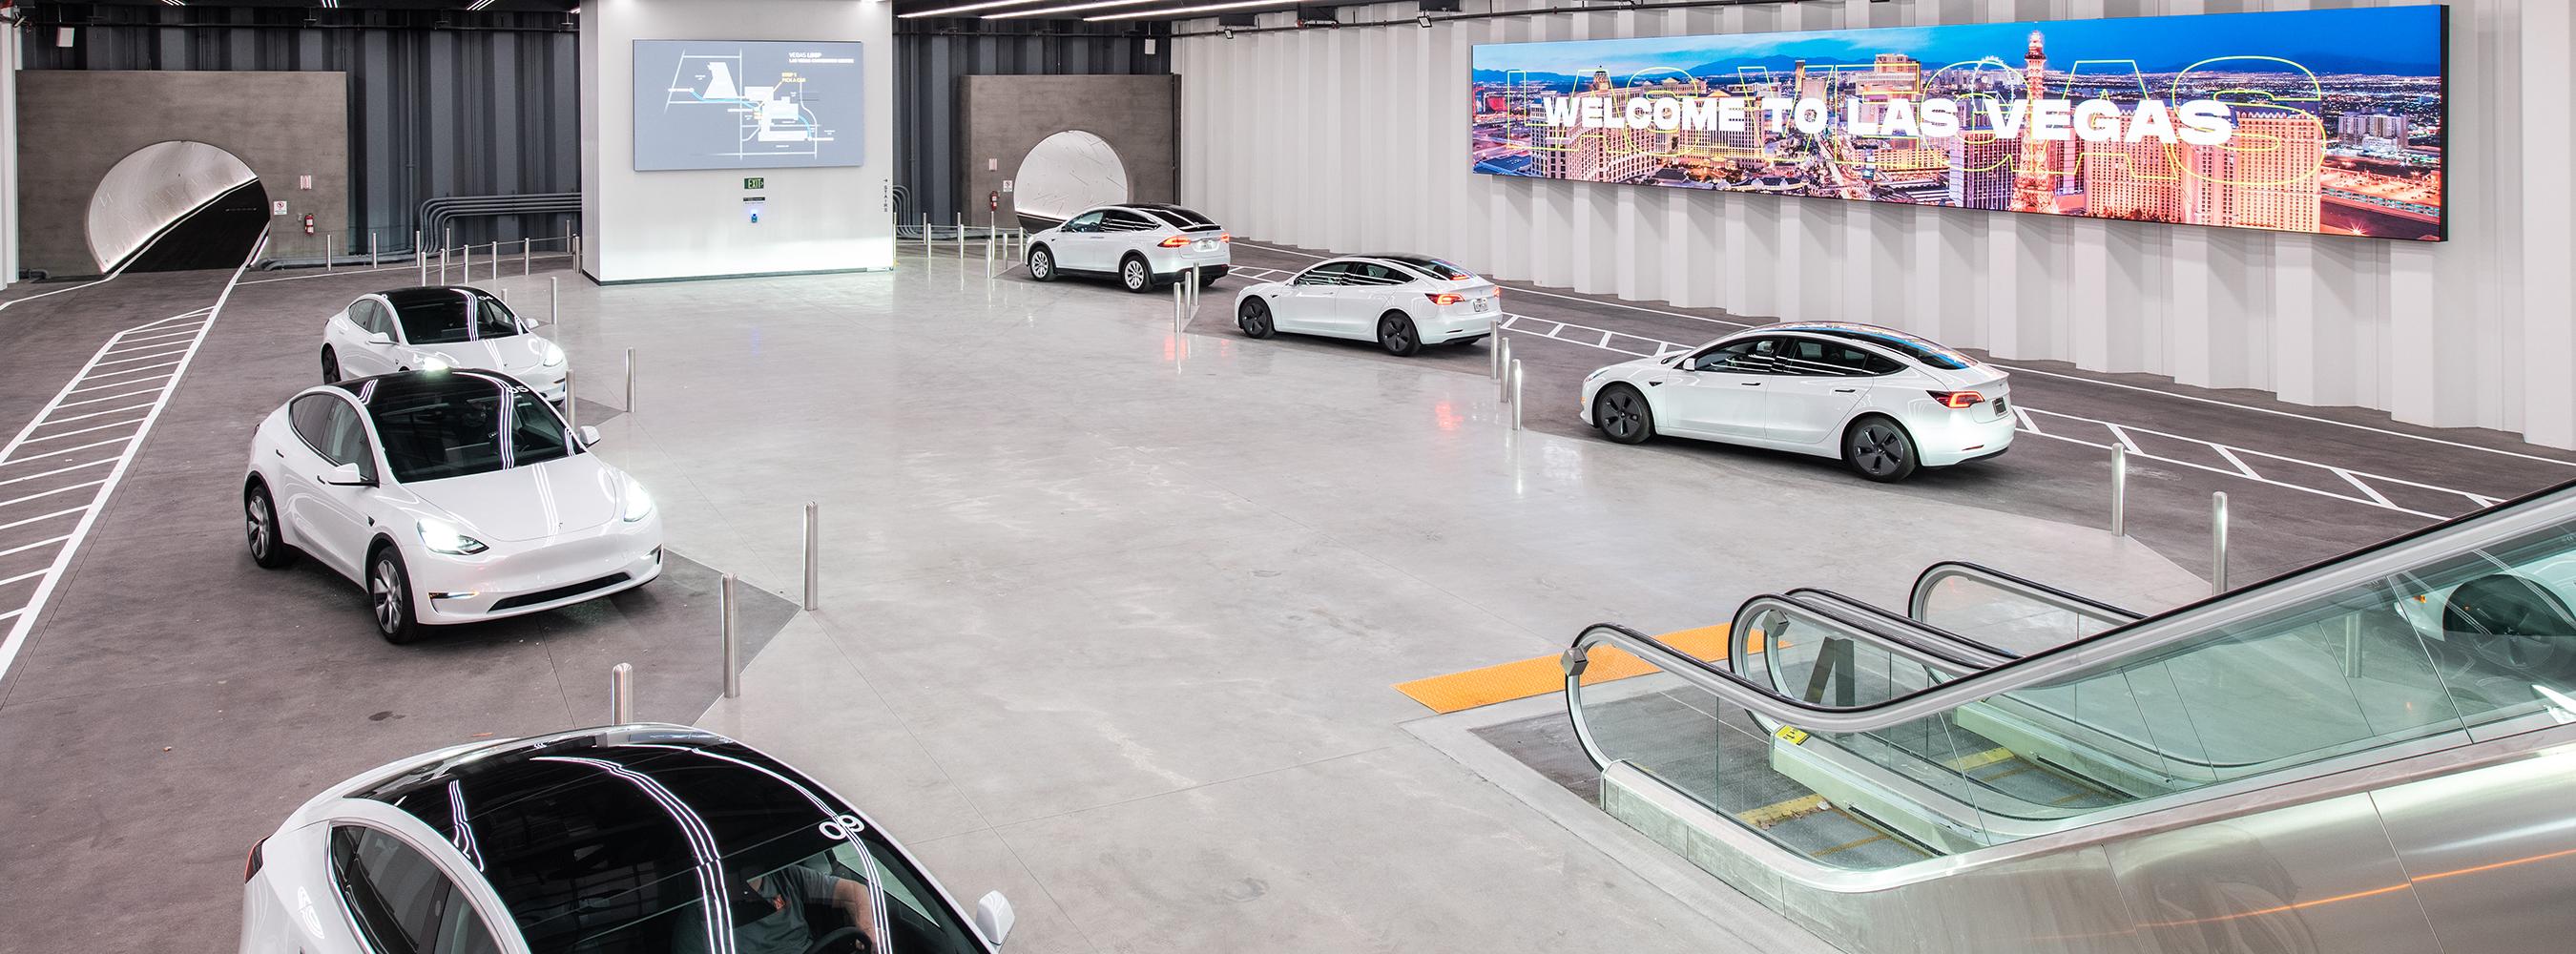 Tesla vehicles parked in the Central Station of the Las Vegas Convention Center Loop